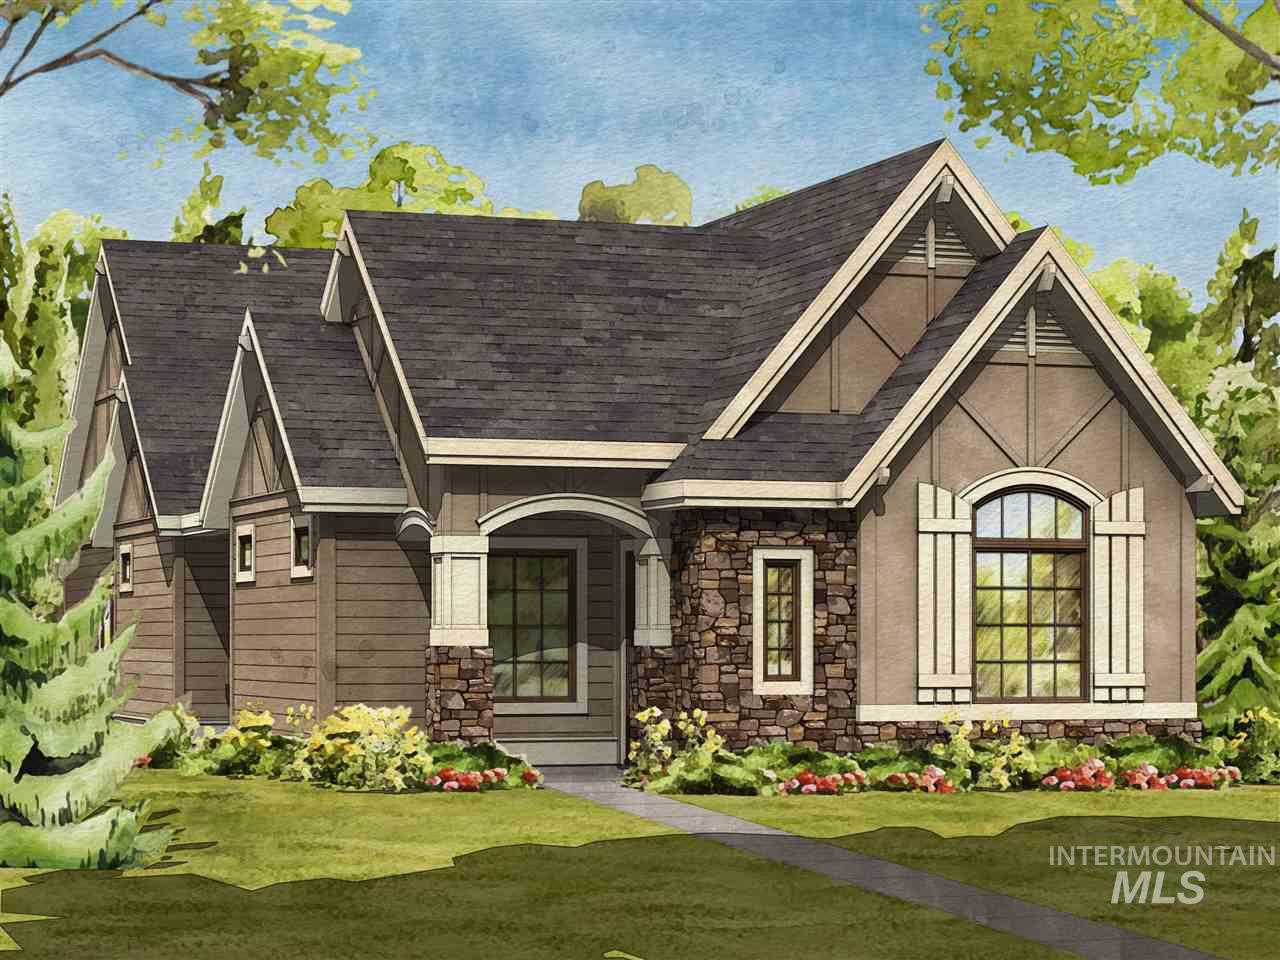 The Prairie Harvest, this efficiently designed floor plan offers function and charm.  The open concept makes this home perfect for entertaining. Retreat to  the beautiful  master suite with walk-in shower and spacious  closet. The flex room makes a great office or craft room. The beautiful kitchen features custom cabinets, walk-in pantry, Bosch stainless steel appliances 100% Energy Star Certified. Interior specs shown are subject to change prior to completion date.